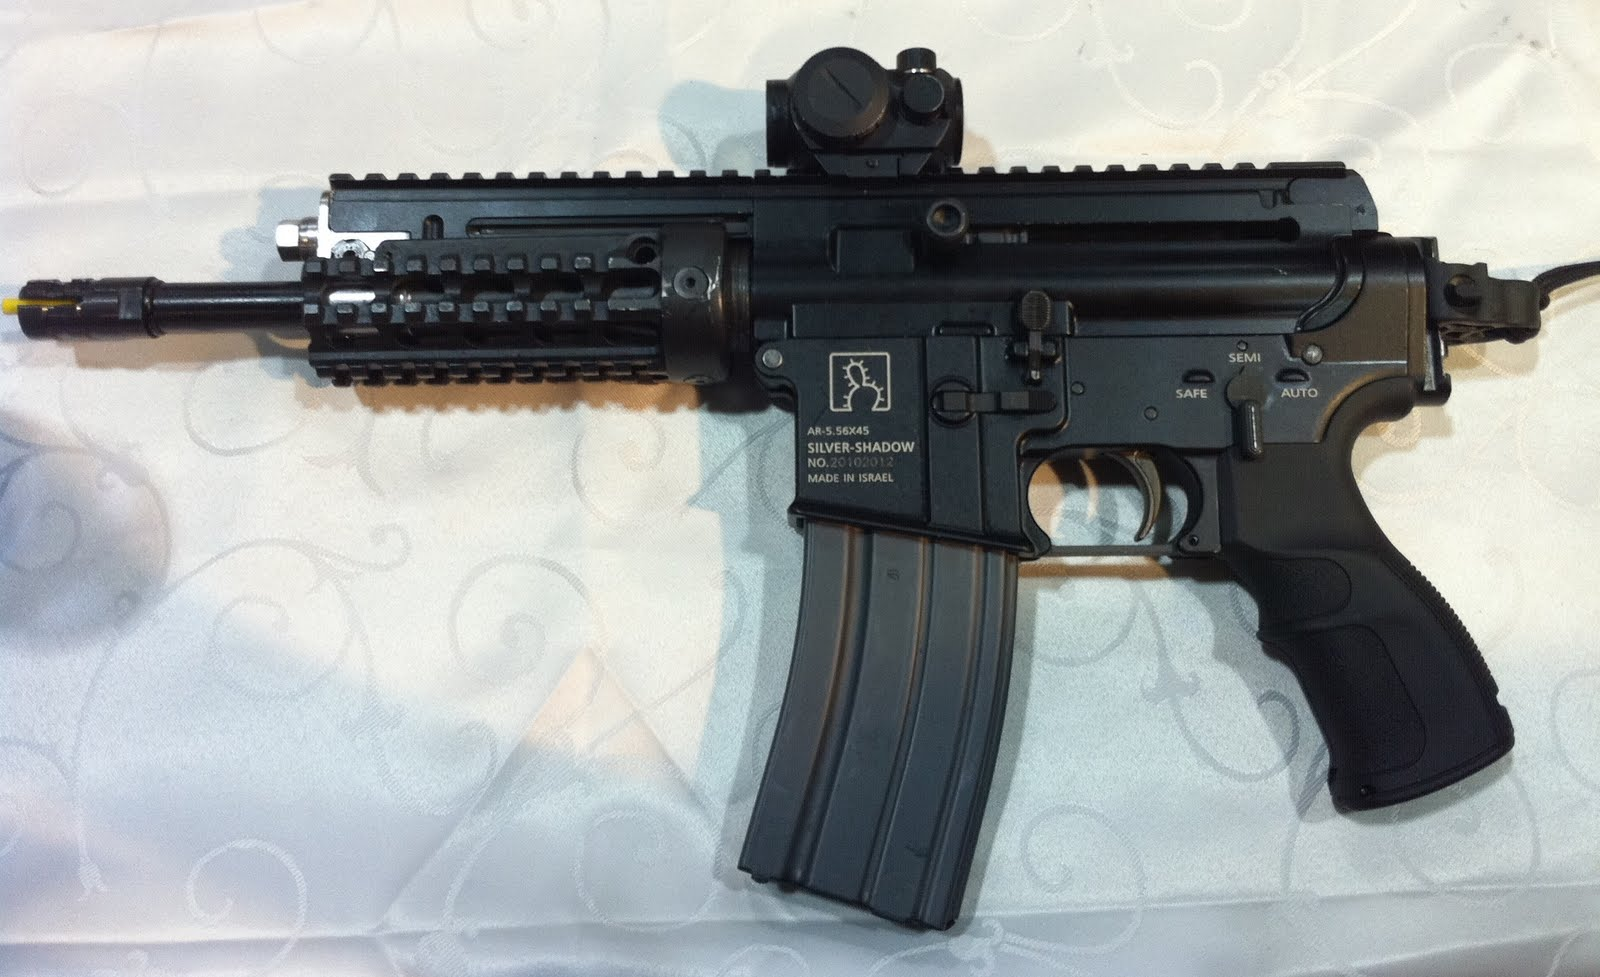 Silver Shadow Gilboa Select Fire 5.56mm Tactical AR Pistol 3 <!  :en  >Silver Shadow Gilboa APR (Assault Pistol Rifle) Select Fire Tactical AR (AR 15) PDW/SBR/Pistol for Military Special Operations (SPECOPS) Applications<!  :  >